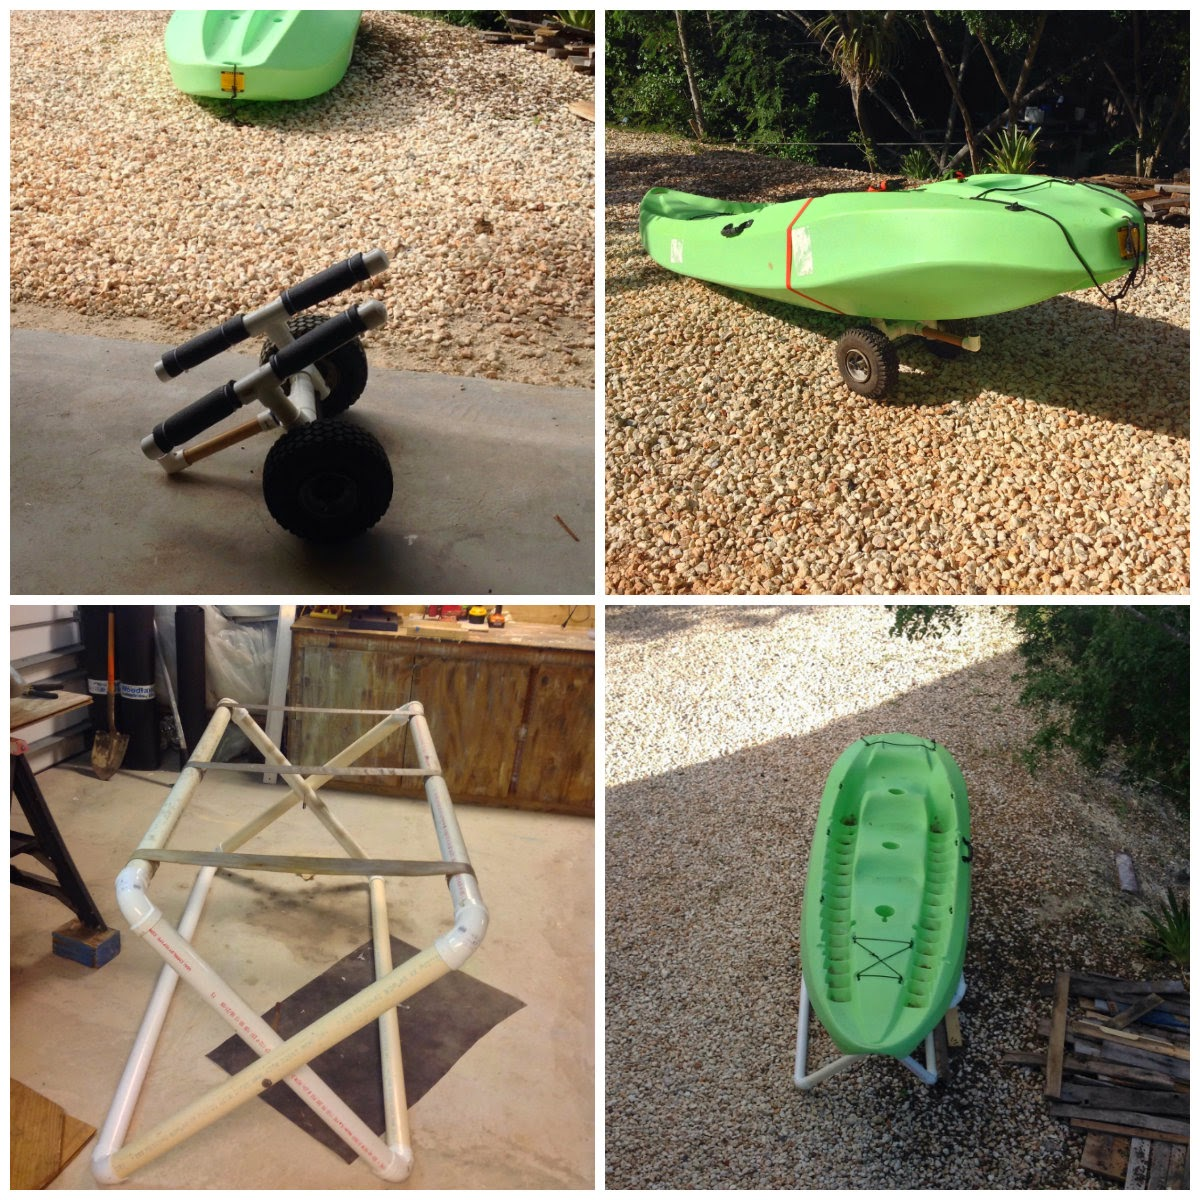 Yakity Yak Diy Pvc Kayak Dolly Build And Rebuild Island Style Fuse Box With Old Work Stand Tutorial To Come